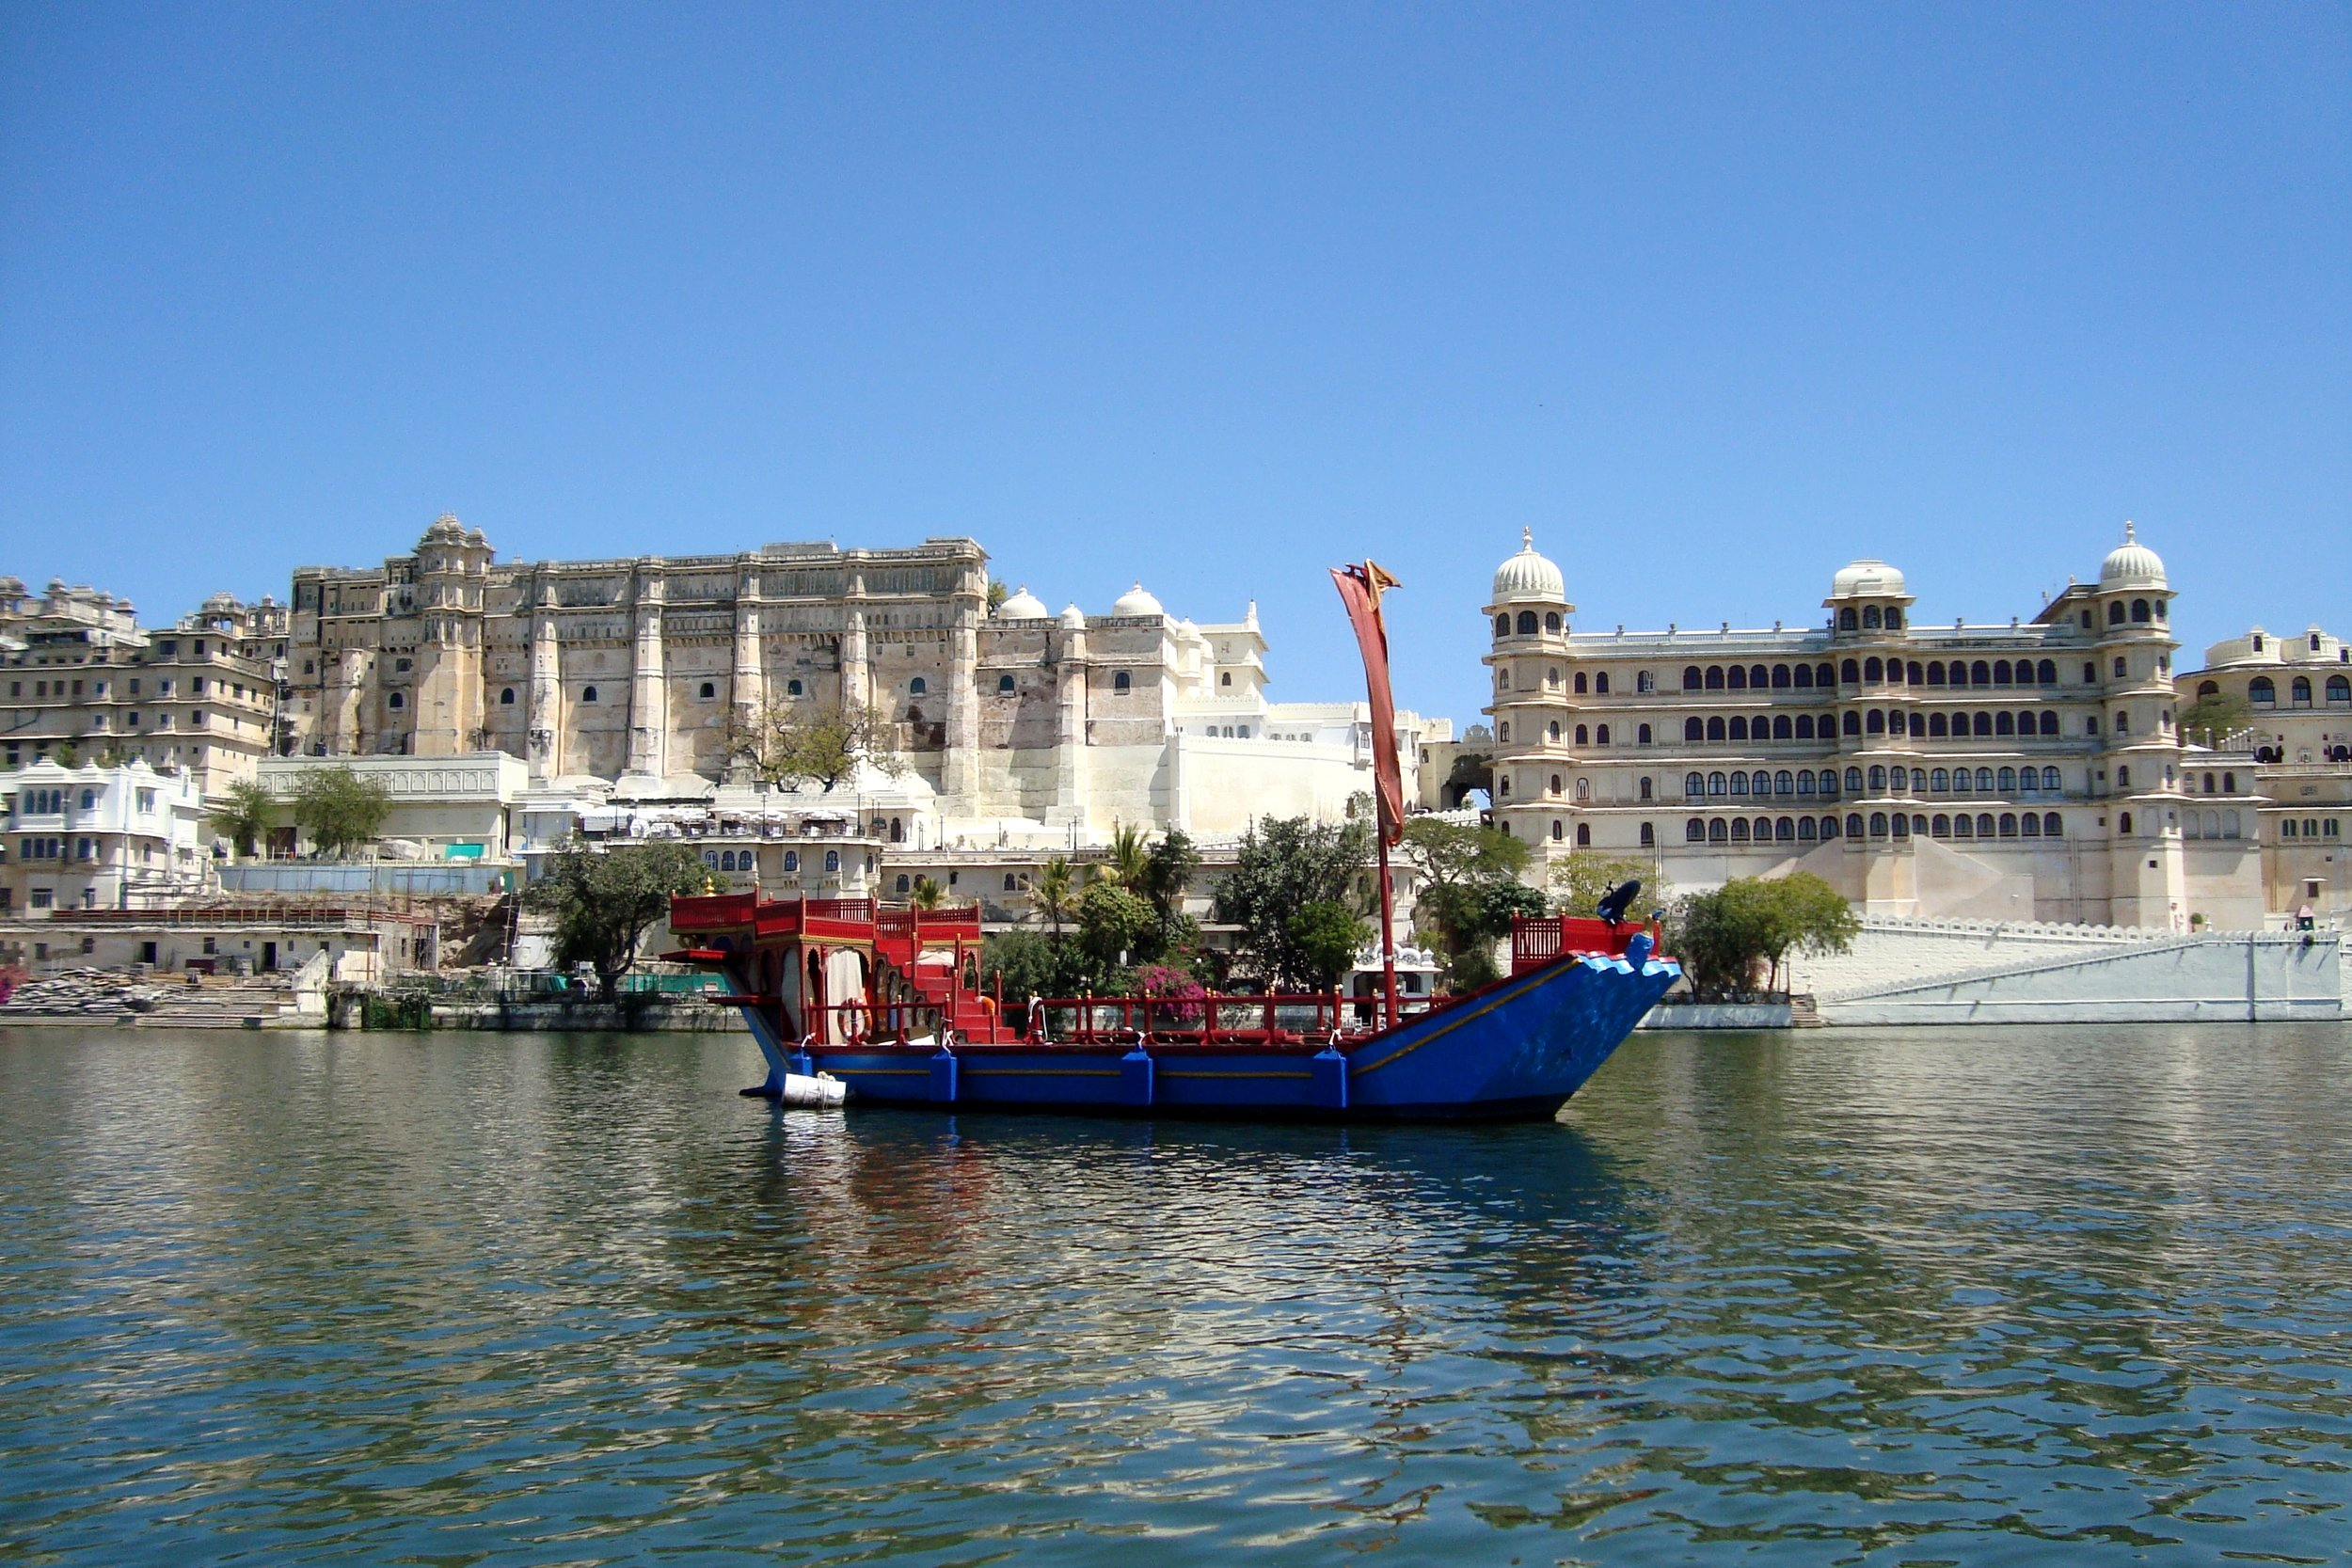 The City Palace of Udaipur, India